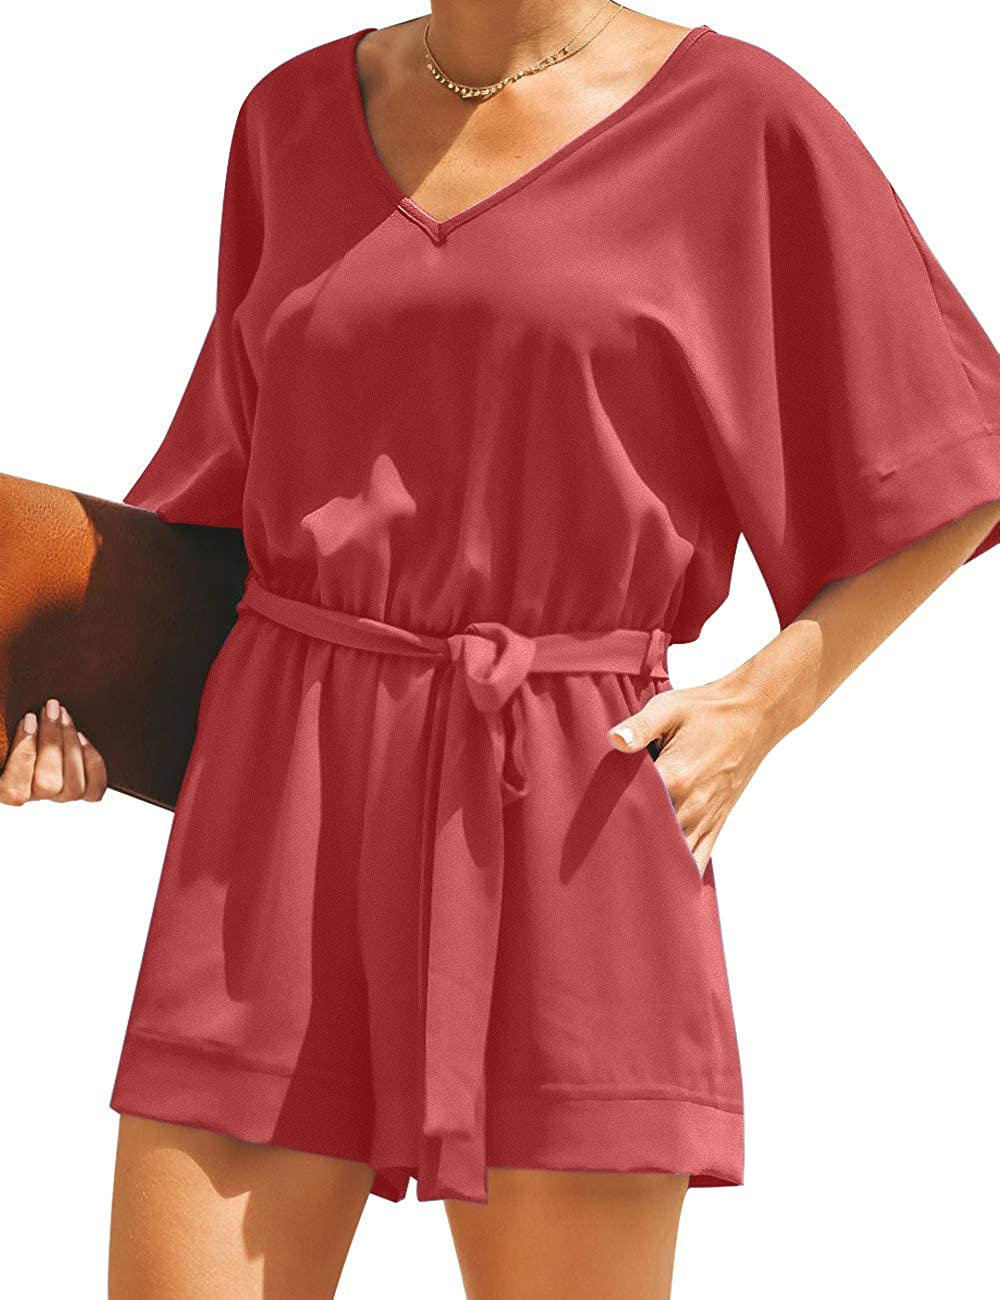 Color : Red, Size : 4XL Moozhitech Rompers for Women Plush Warm Hooded Open Front Long Sleeve Short Pant Jumpsuit Playsuit Tops